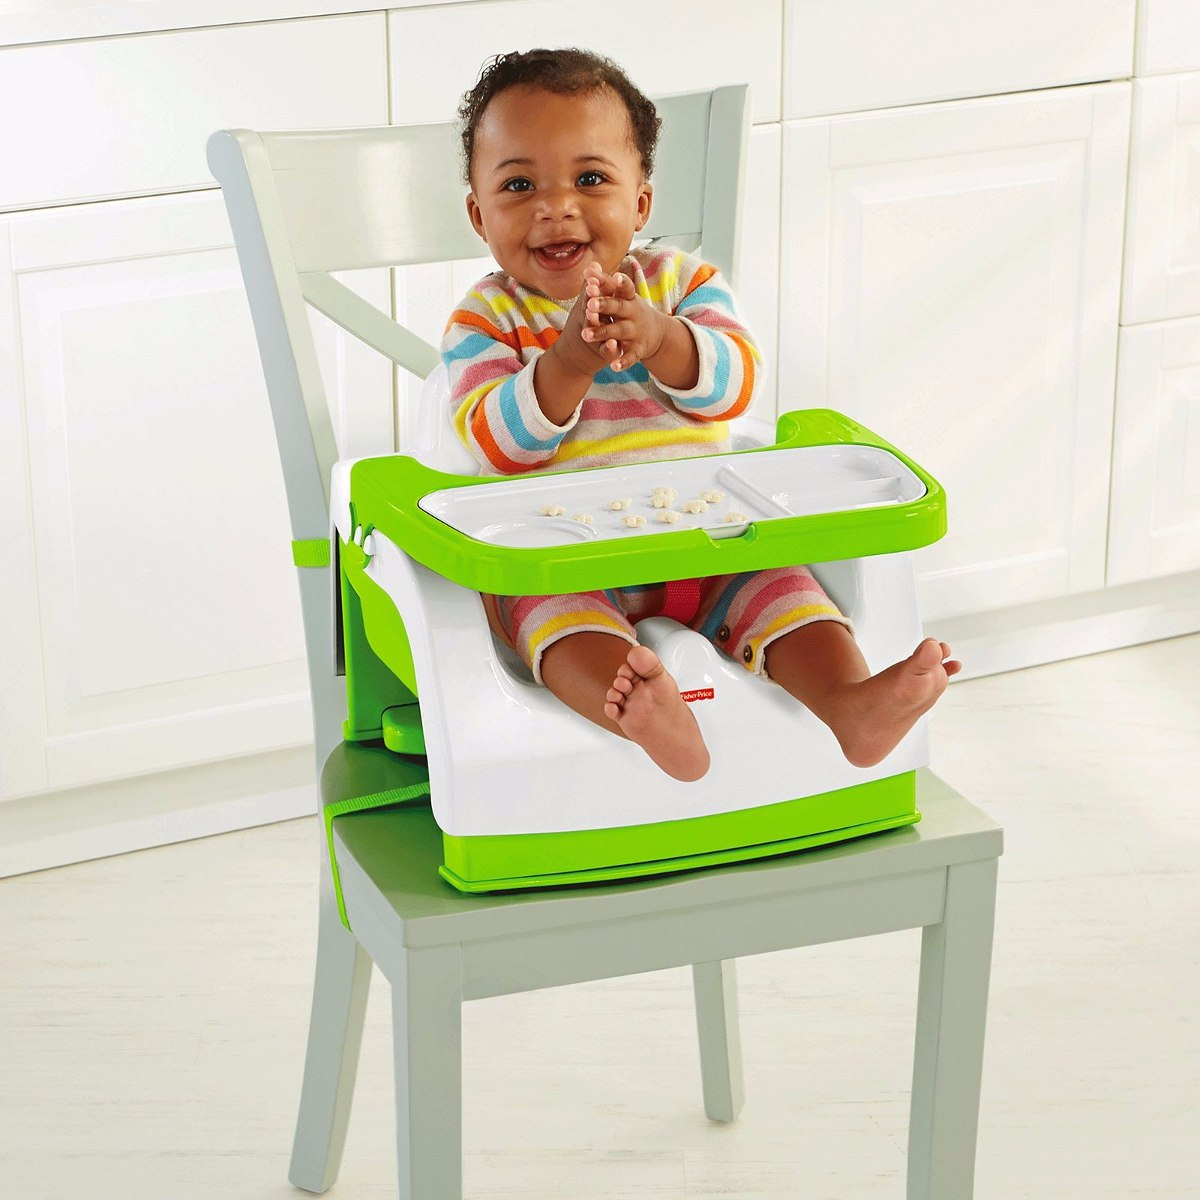 Fisher price grow with me booster green silla comedor bebe for Silla 2 en 1 fisher price